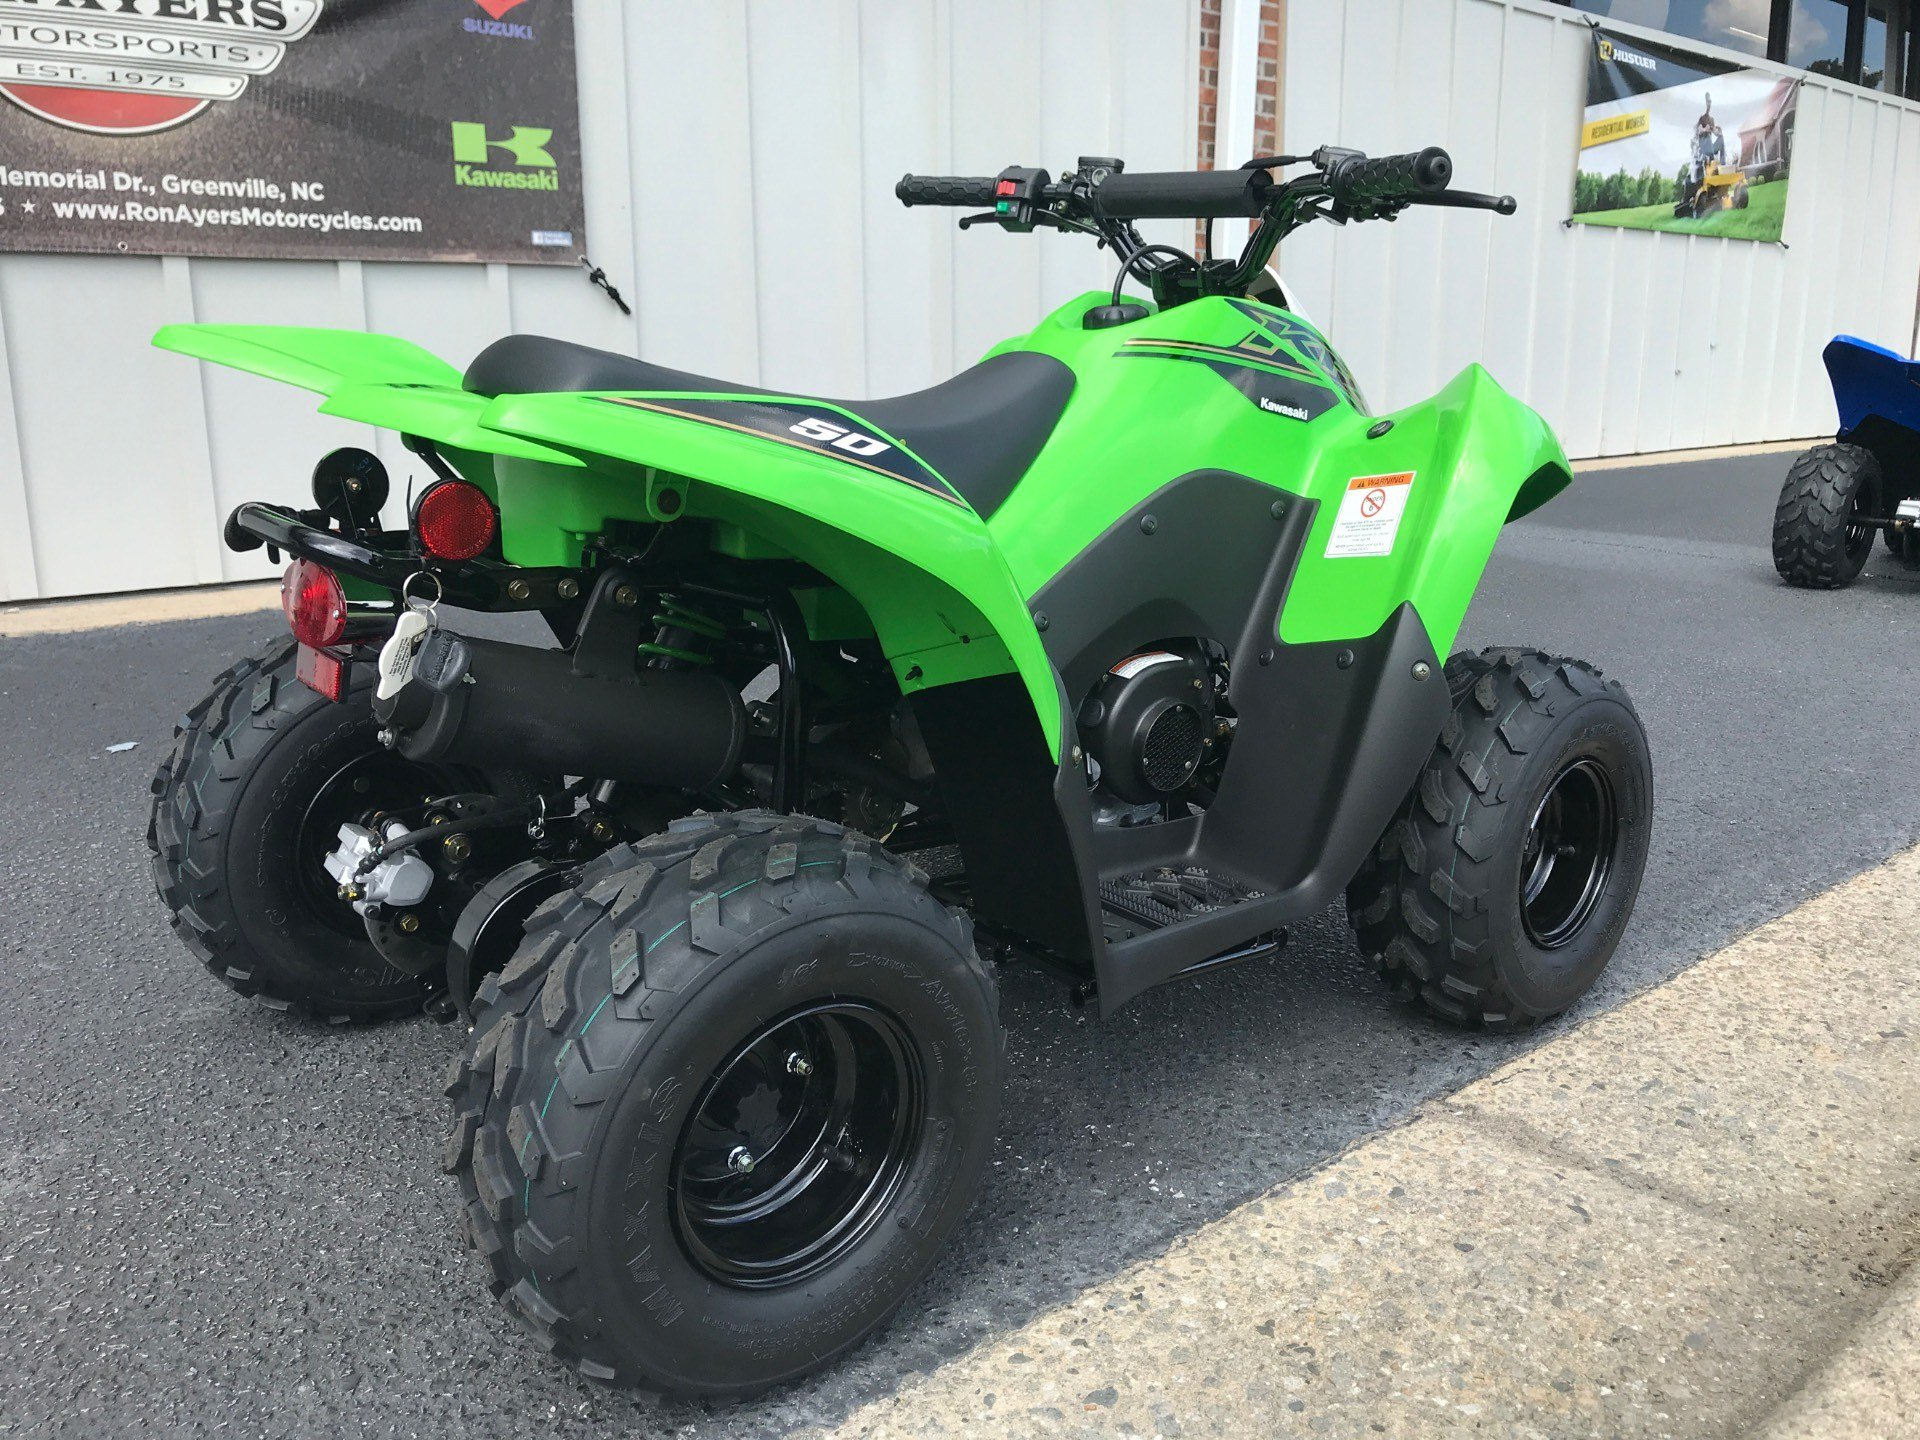 2021 Kawasaki KFX 50 in Greenville, North Carolina - Photo 8